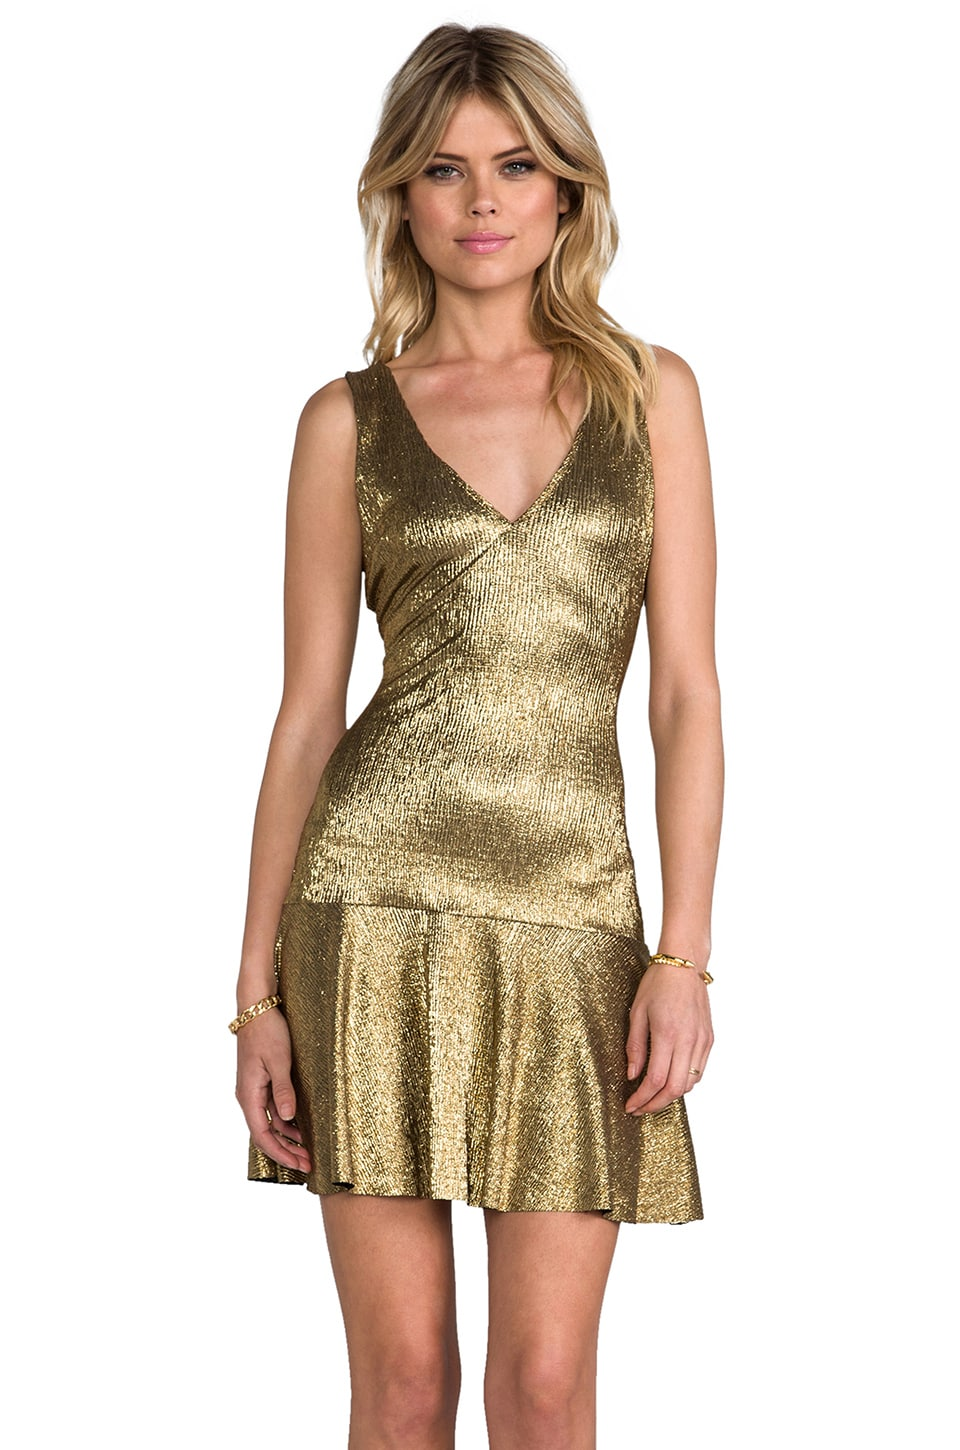 SAM&LAVI Lesa Dress in Metallic Gold Knit